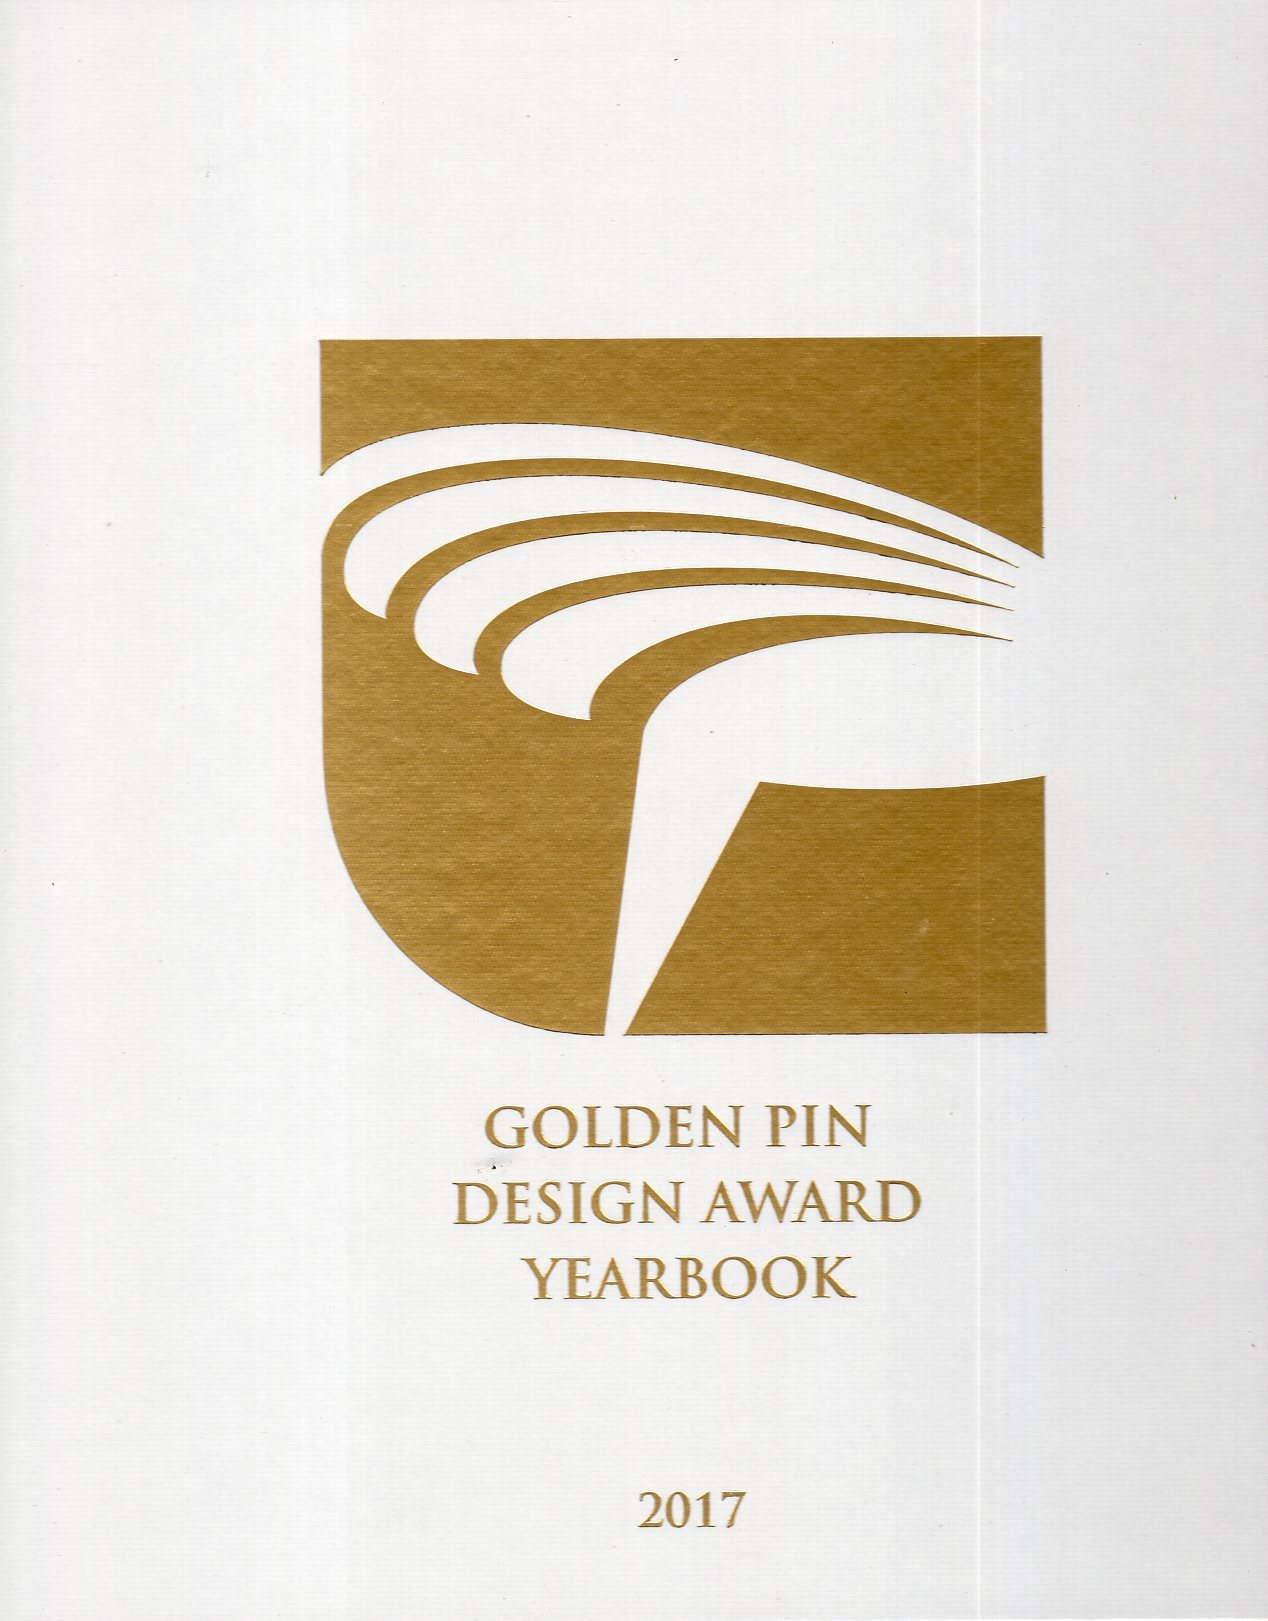 Golden Pin Design Award Yearbook 2017金點設計獎年鑑